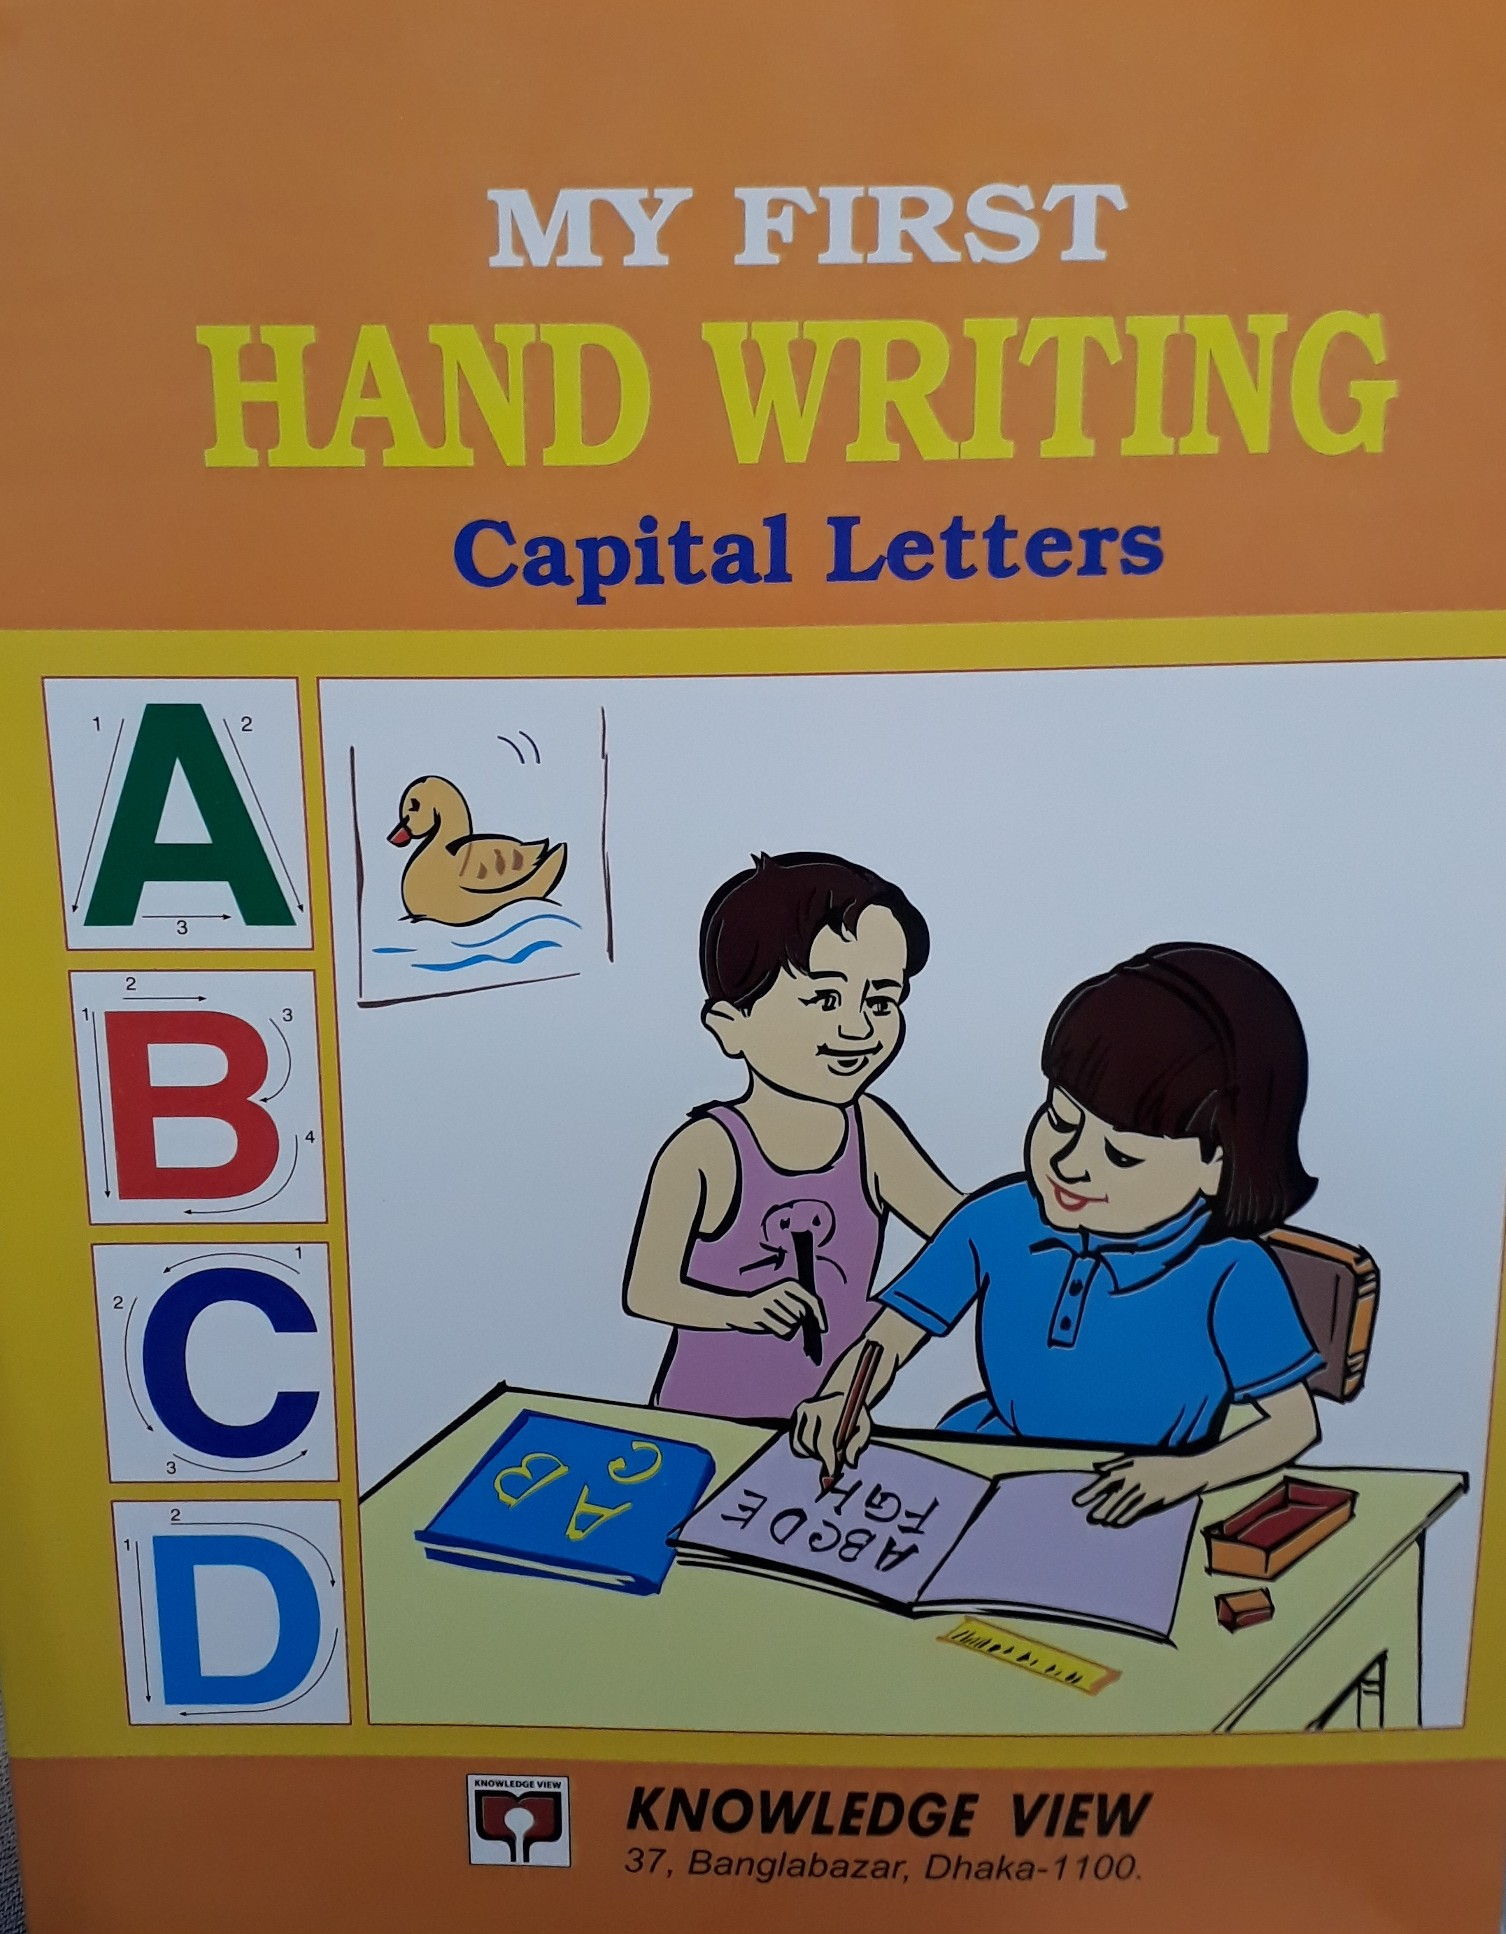 MY FIRST HAND WRITING CAPITAL LETTERS